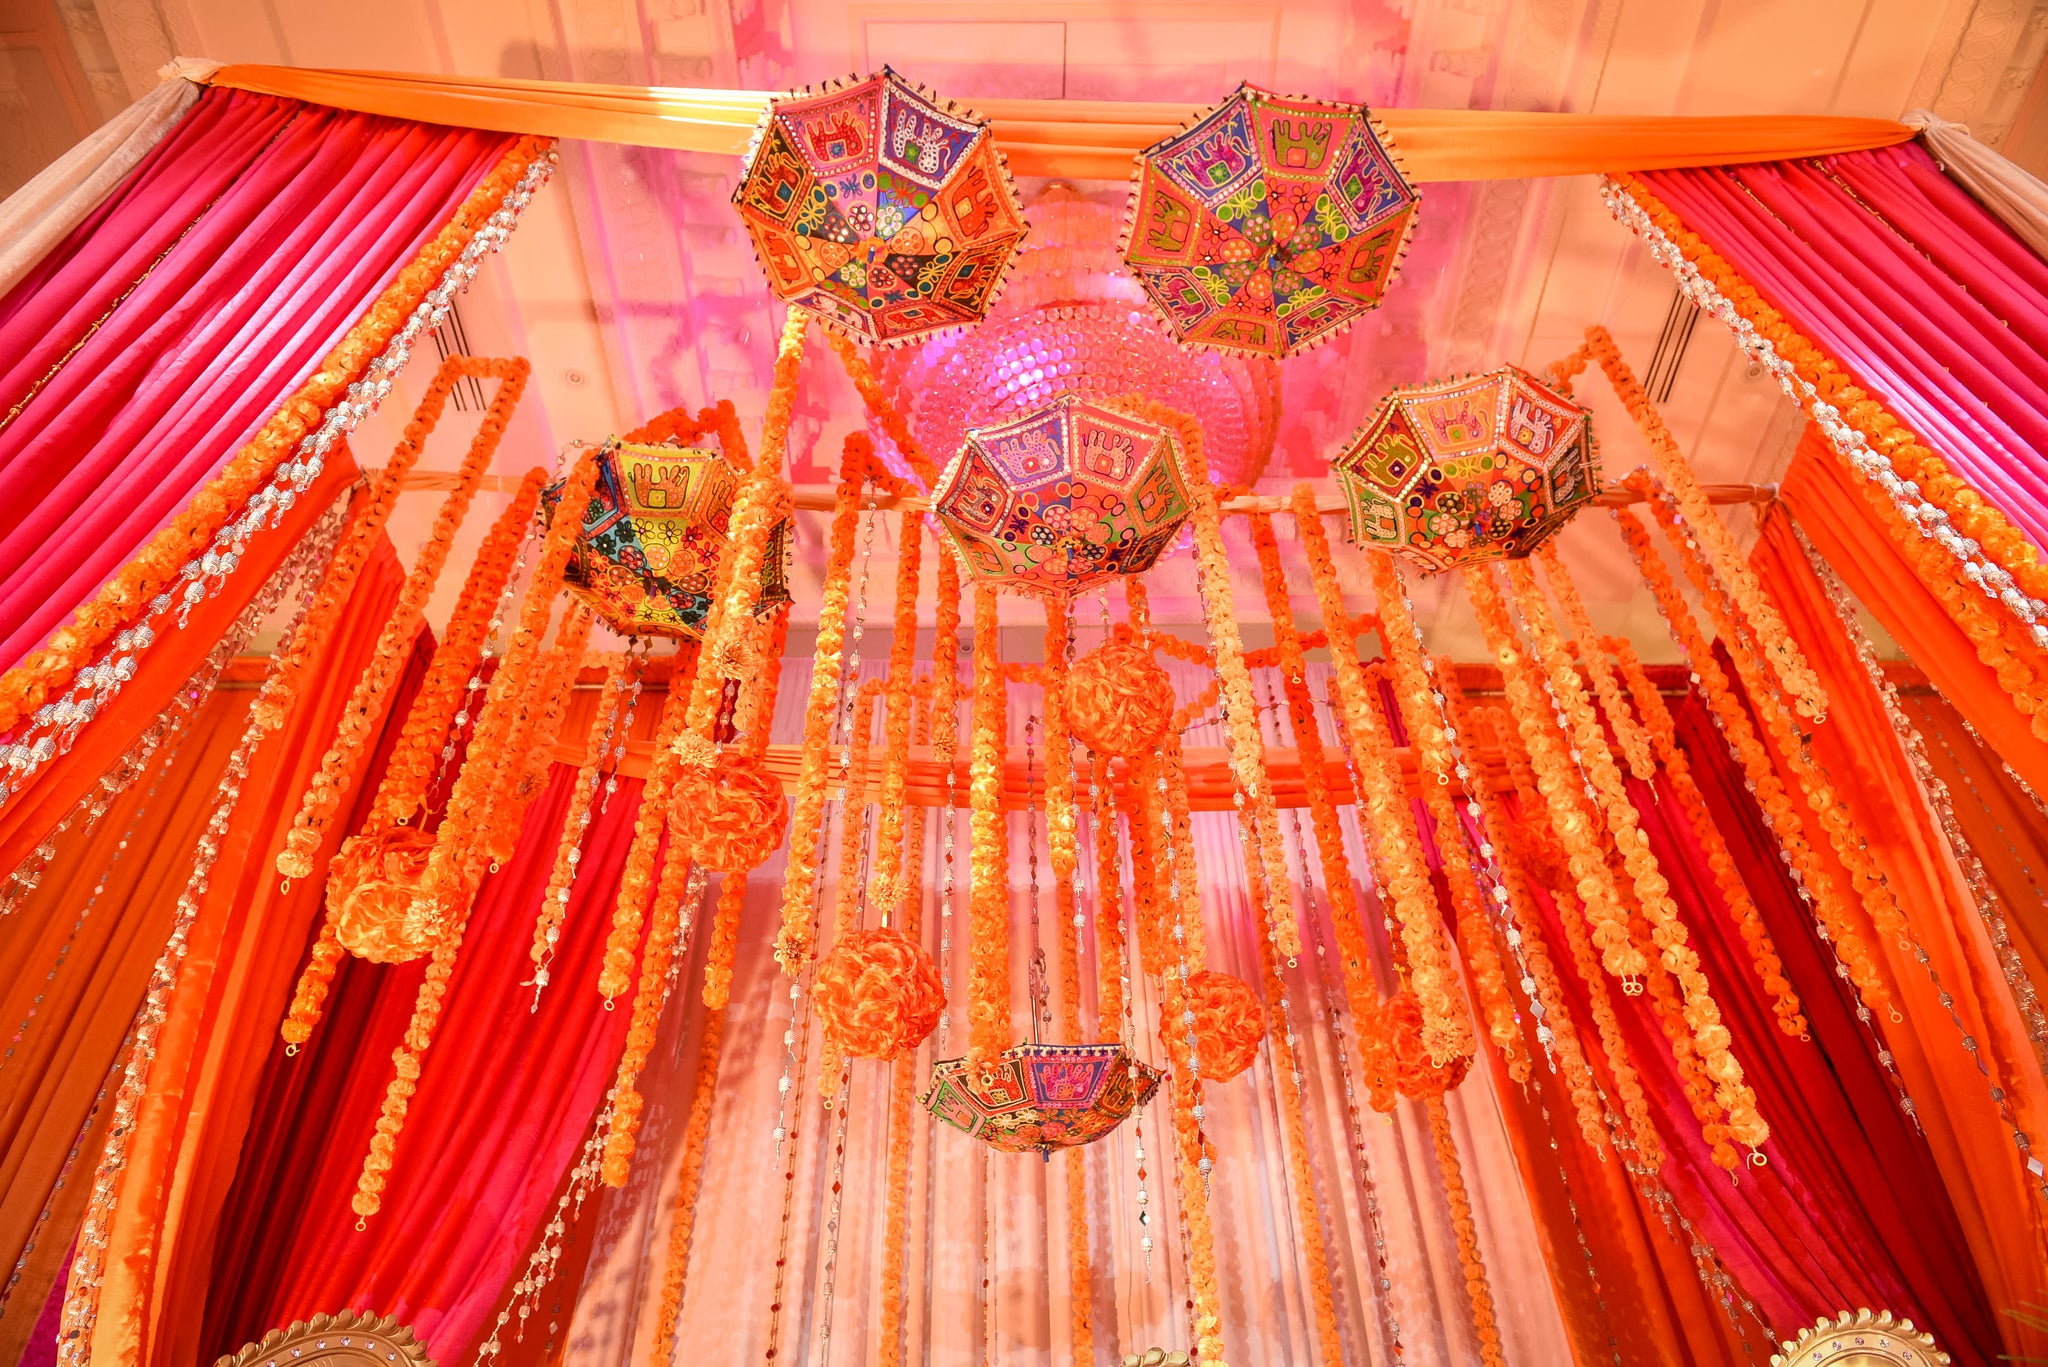 Marigolds In Indian Weddings | What Do Wedding Flowers Symbolize?